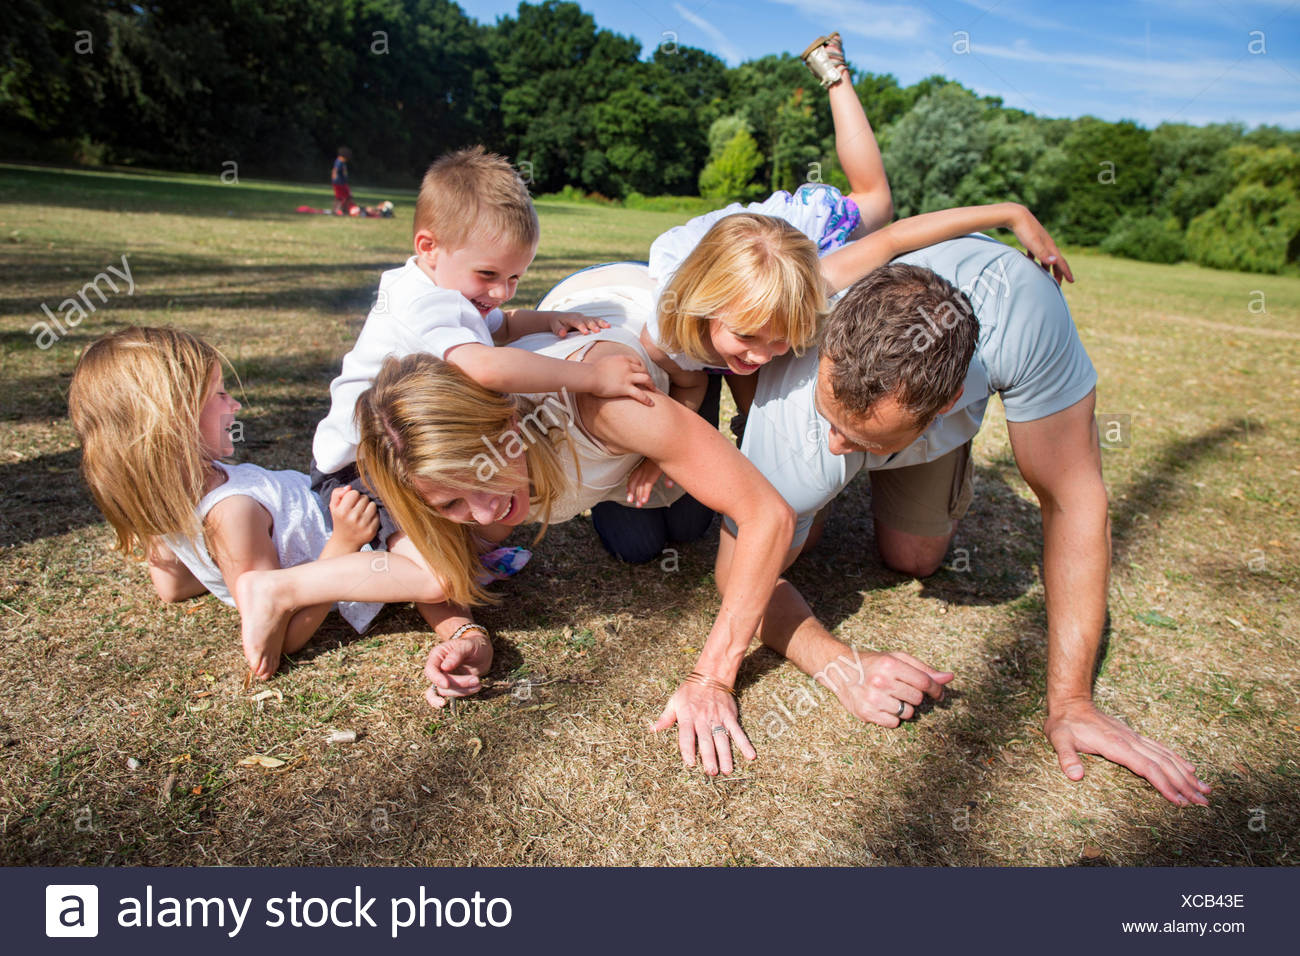 Family with three children playing in a park. Stock Photo